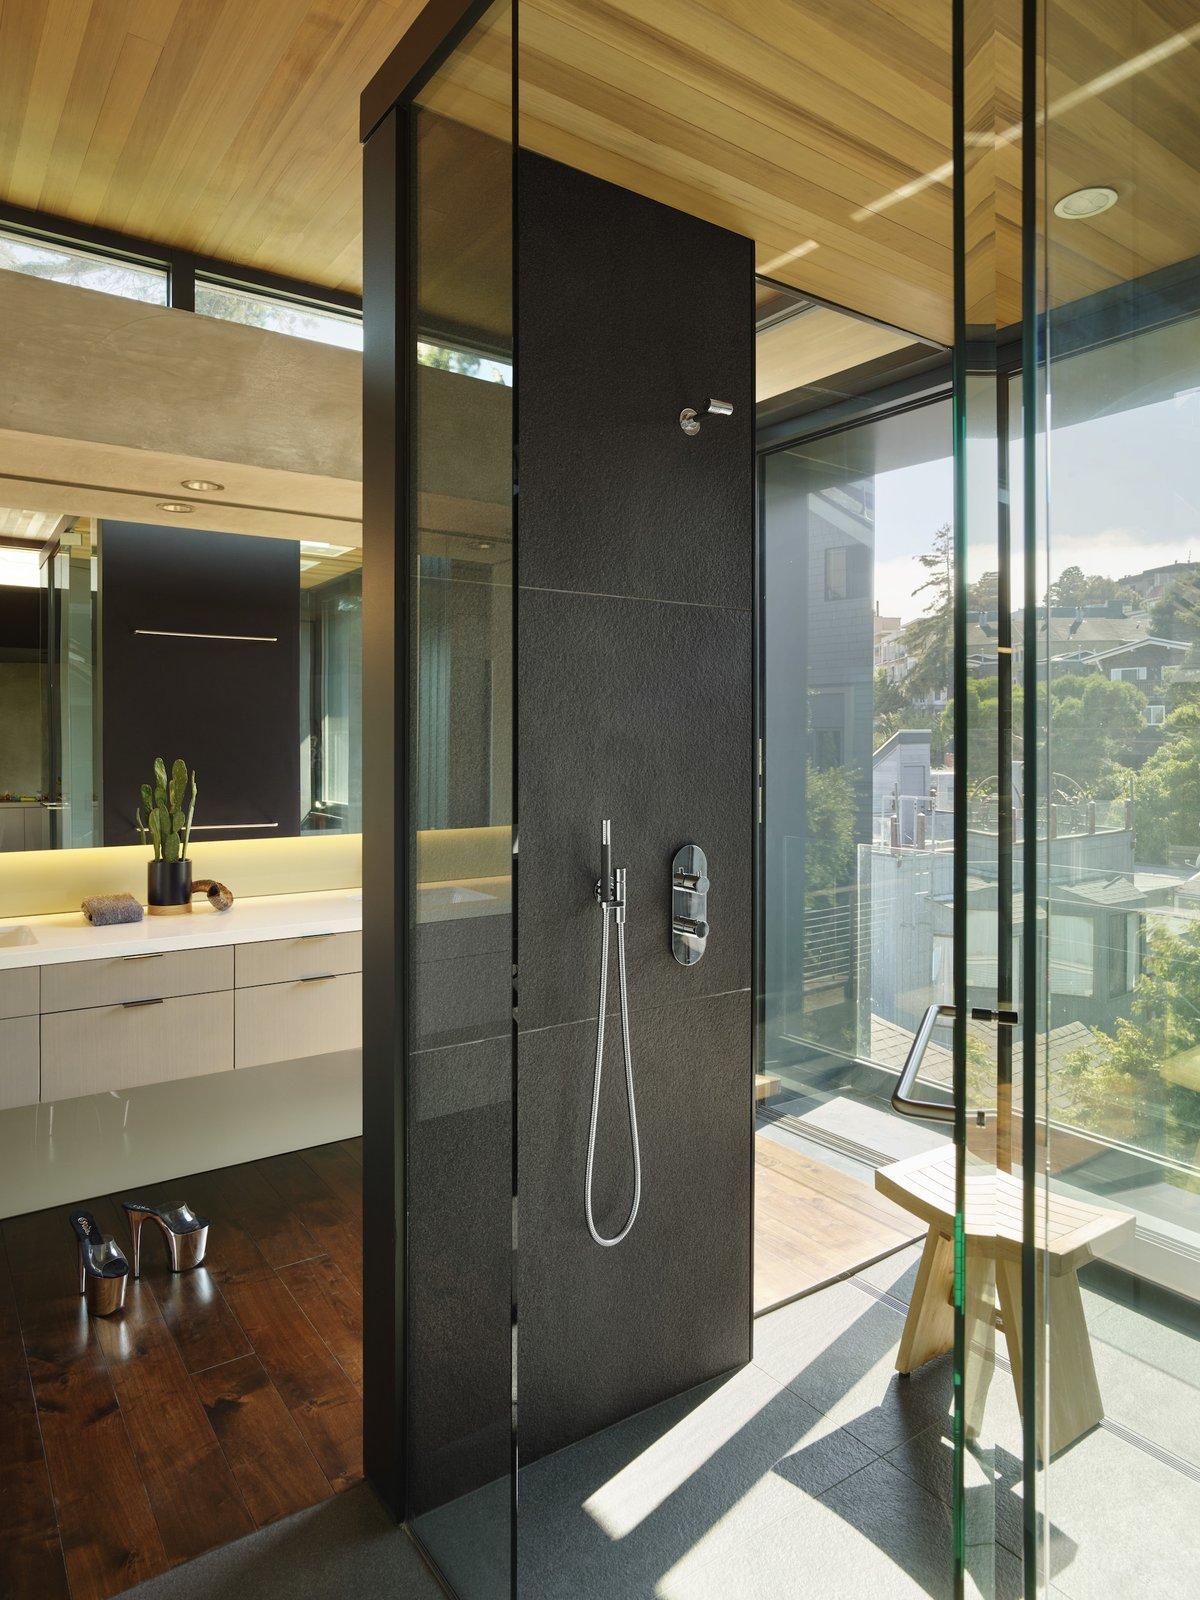 Bathroom at Terrace House by Aidlin Darling Design.